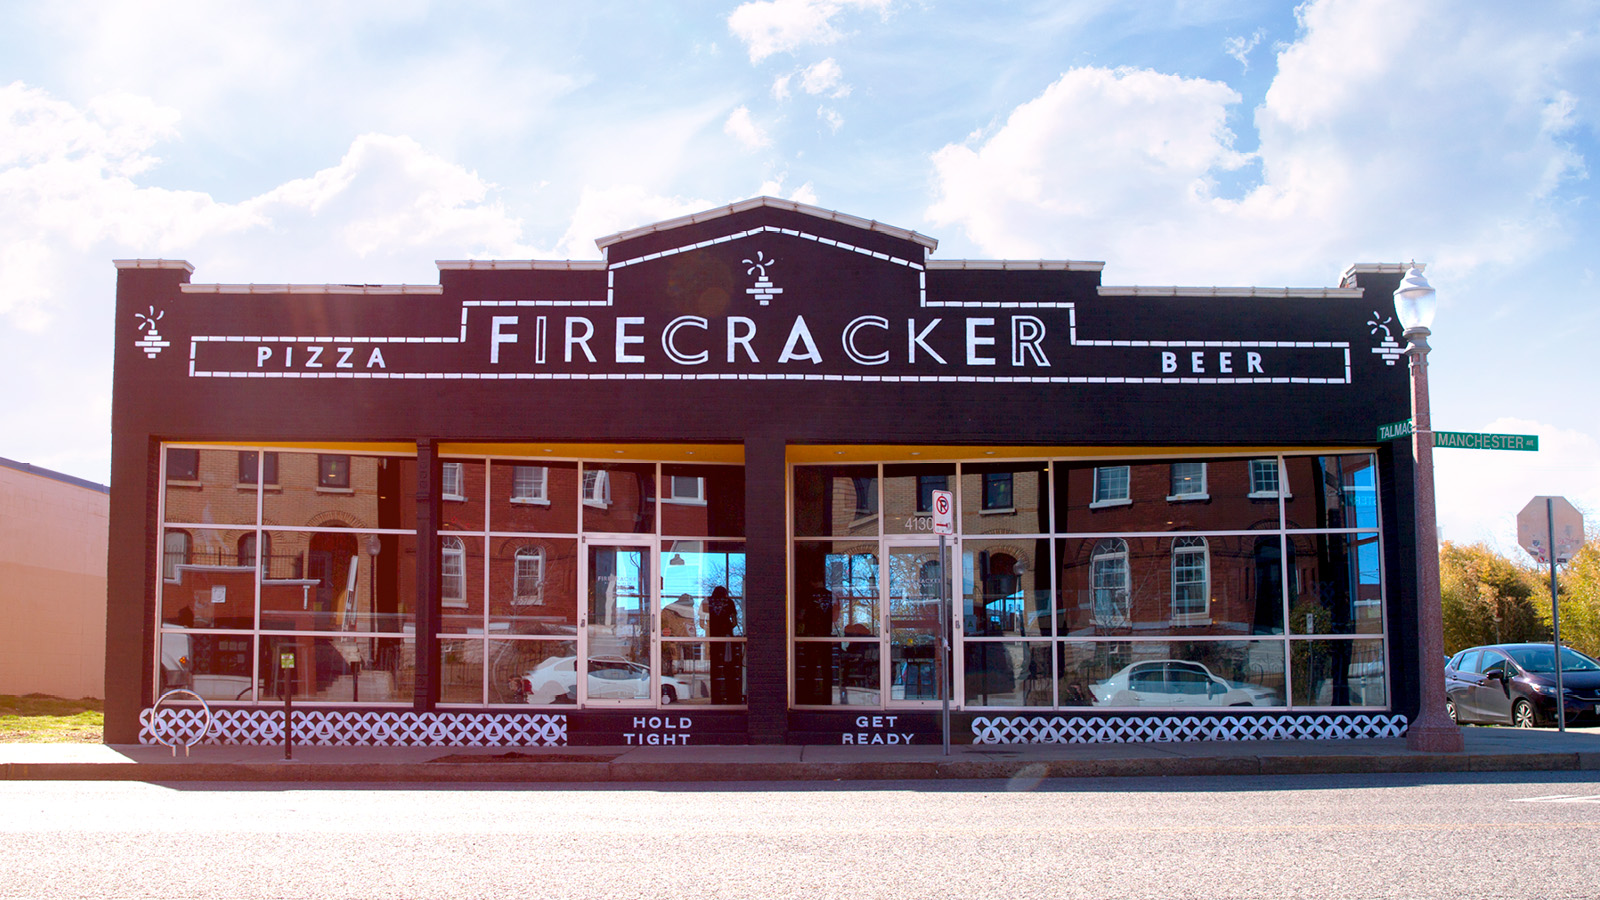 Photo of Firecracker Pizza Handpainted Signage